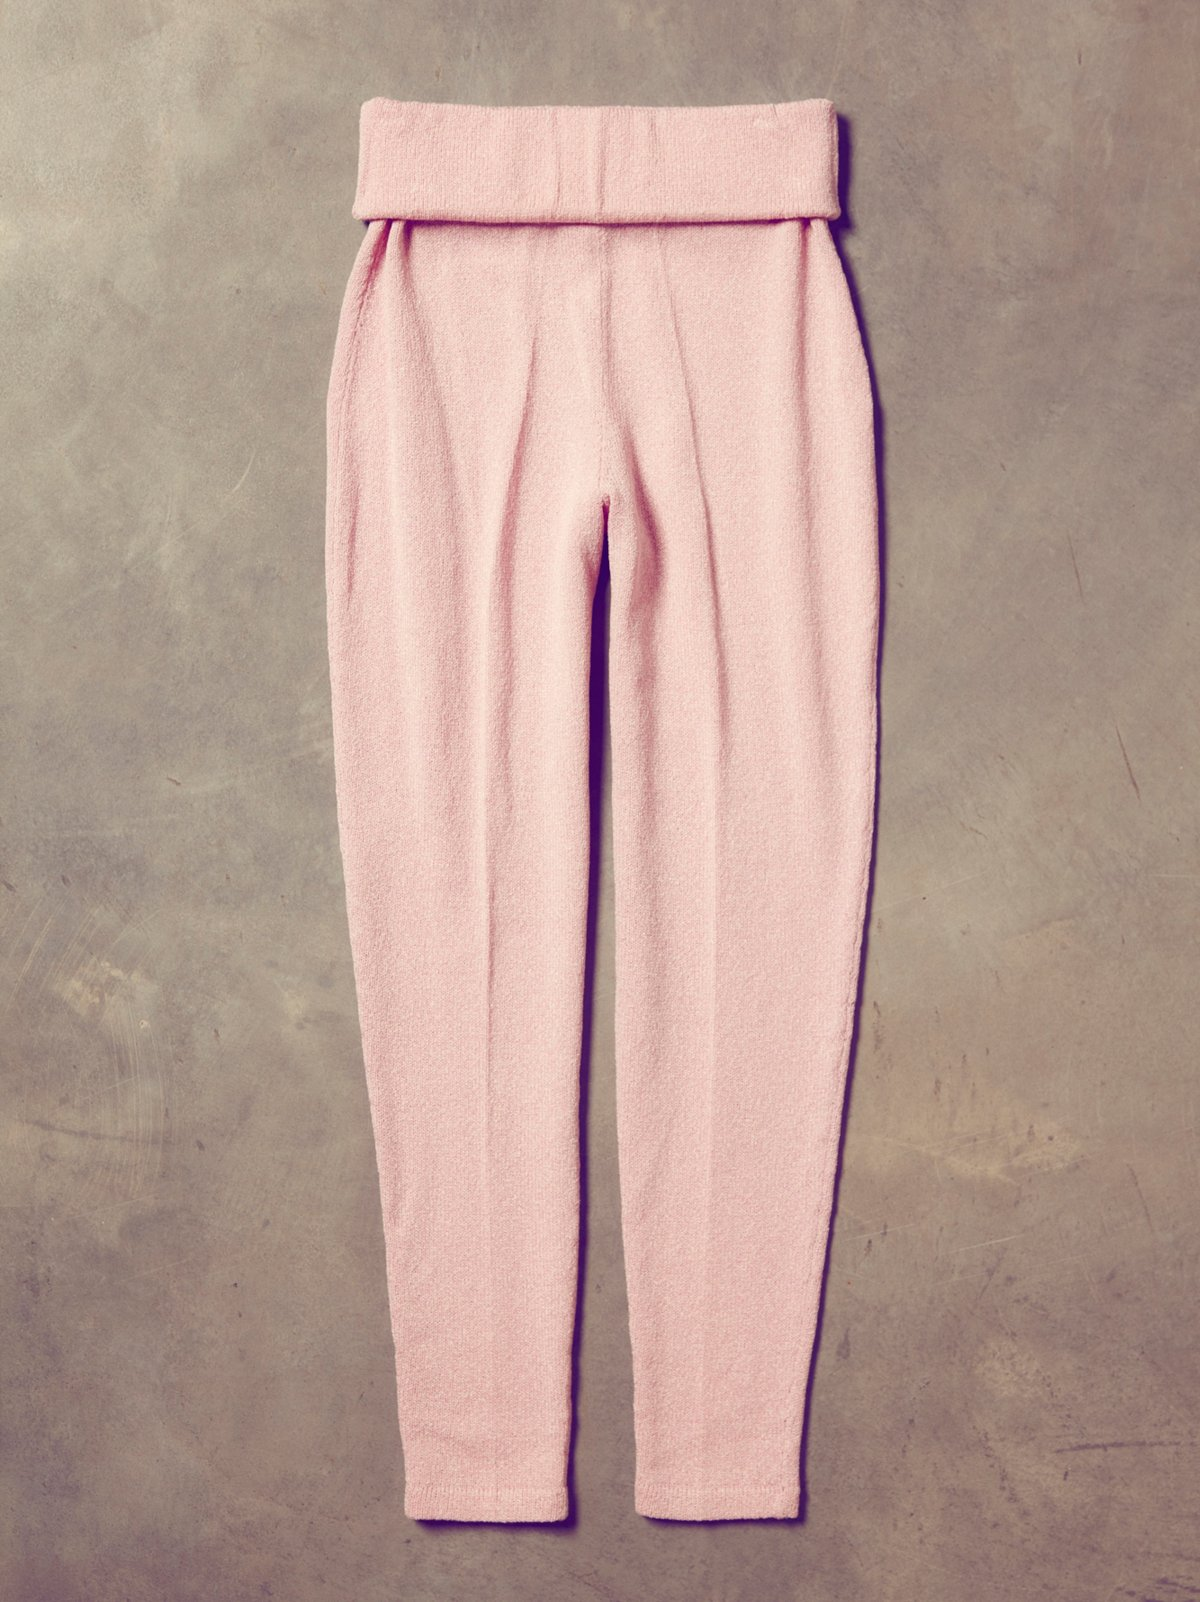 Vintage 1960s Hand Knit Warm Up Pants